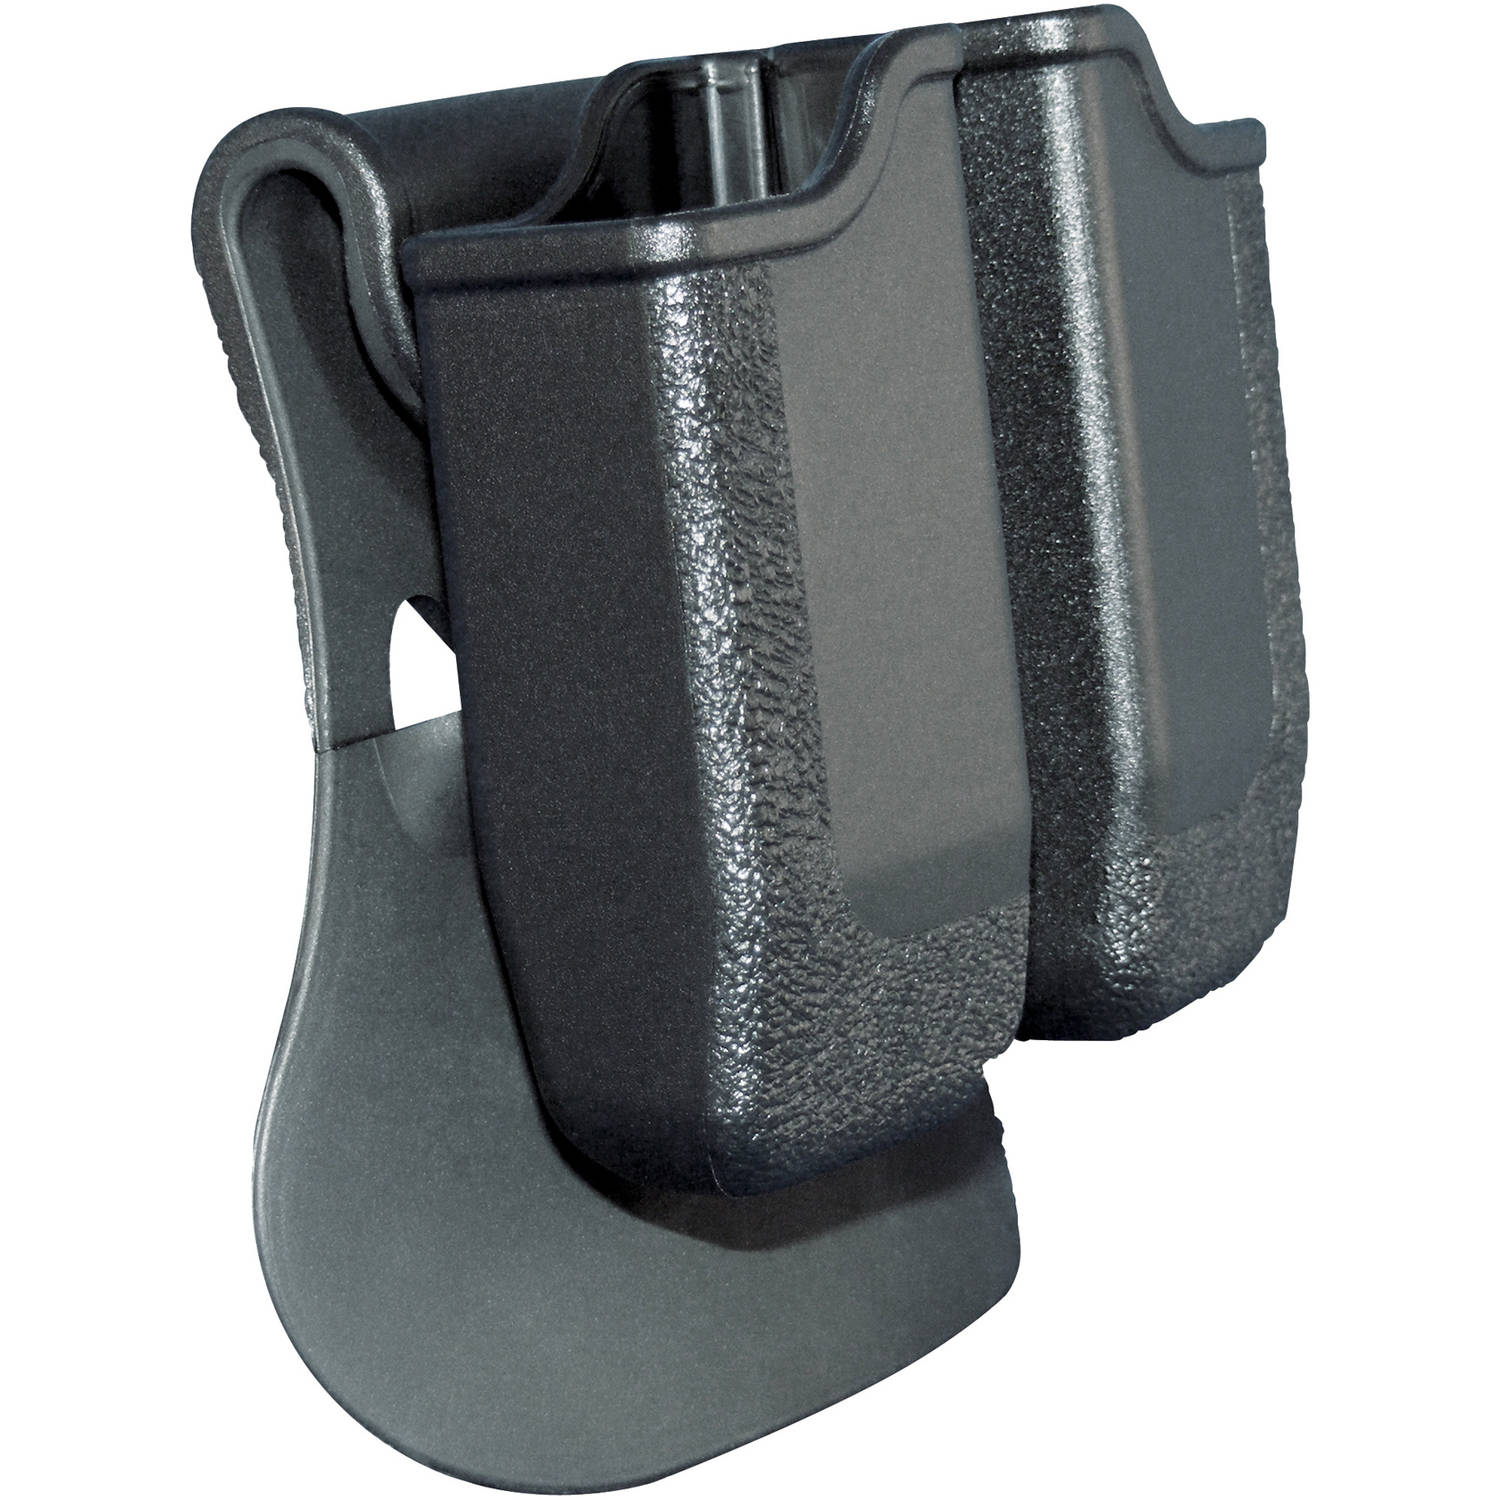 Sig Sauer Double Magazine Pouch, Fits 1911 Single Stacks, Black